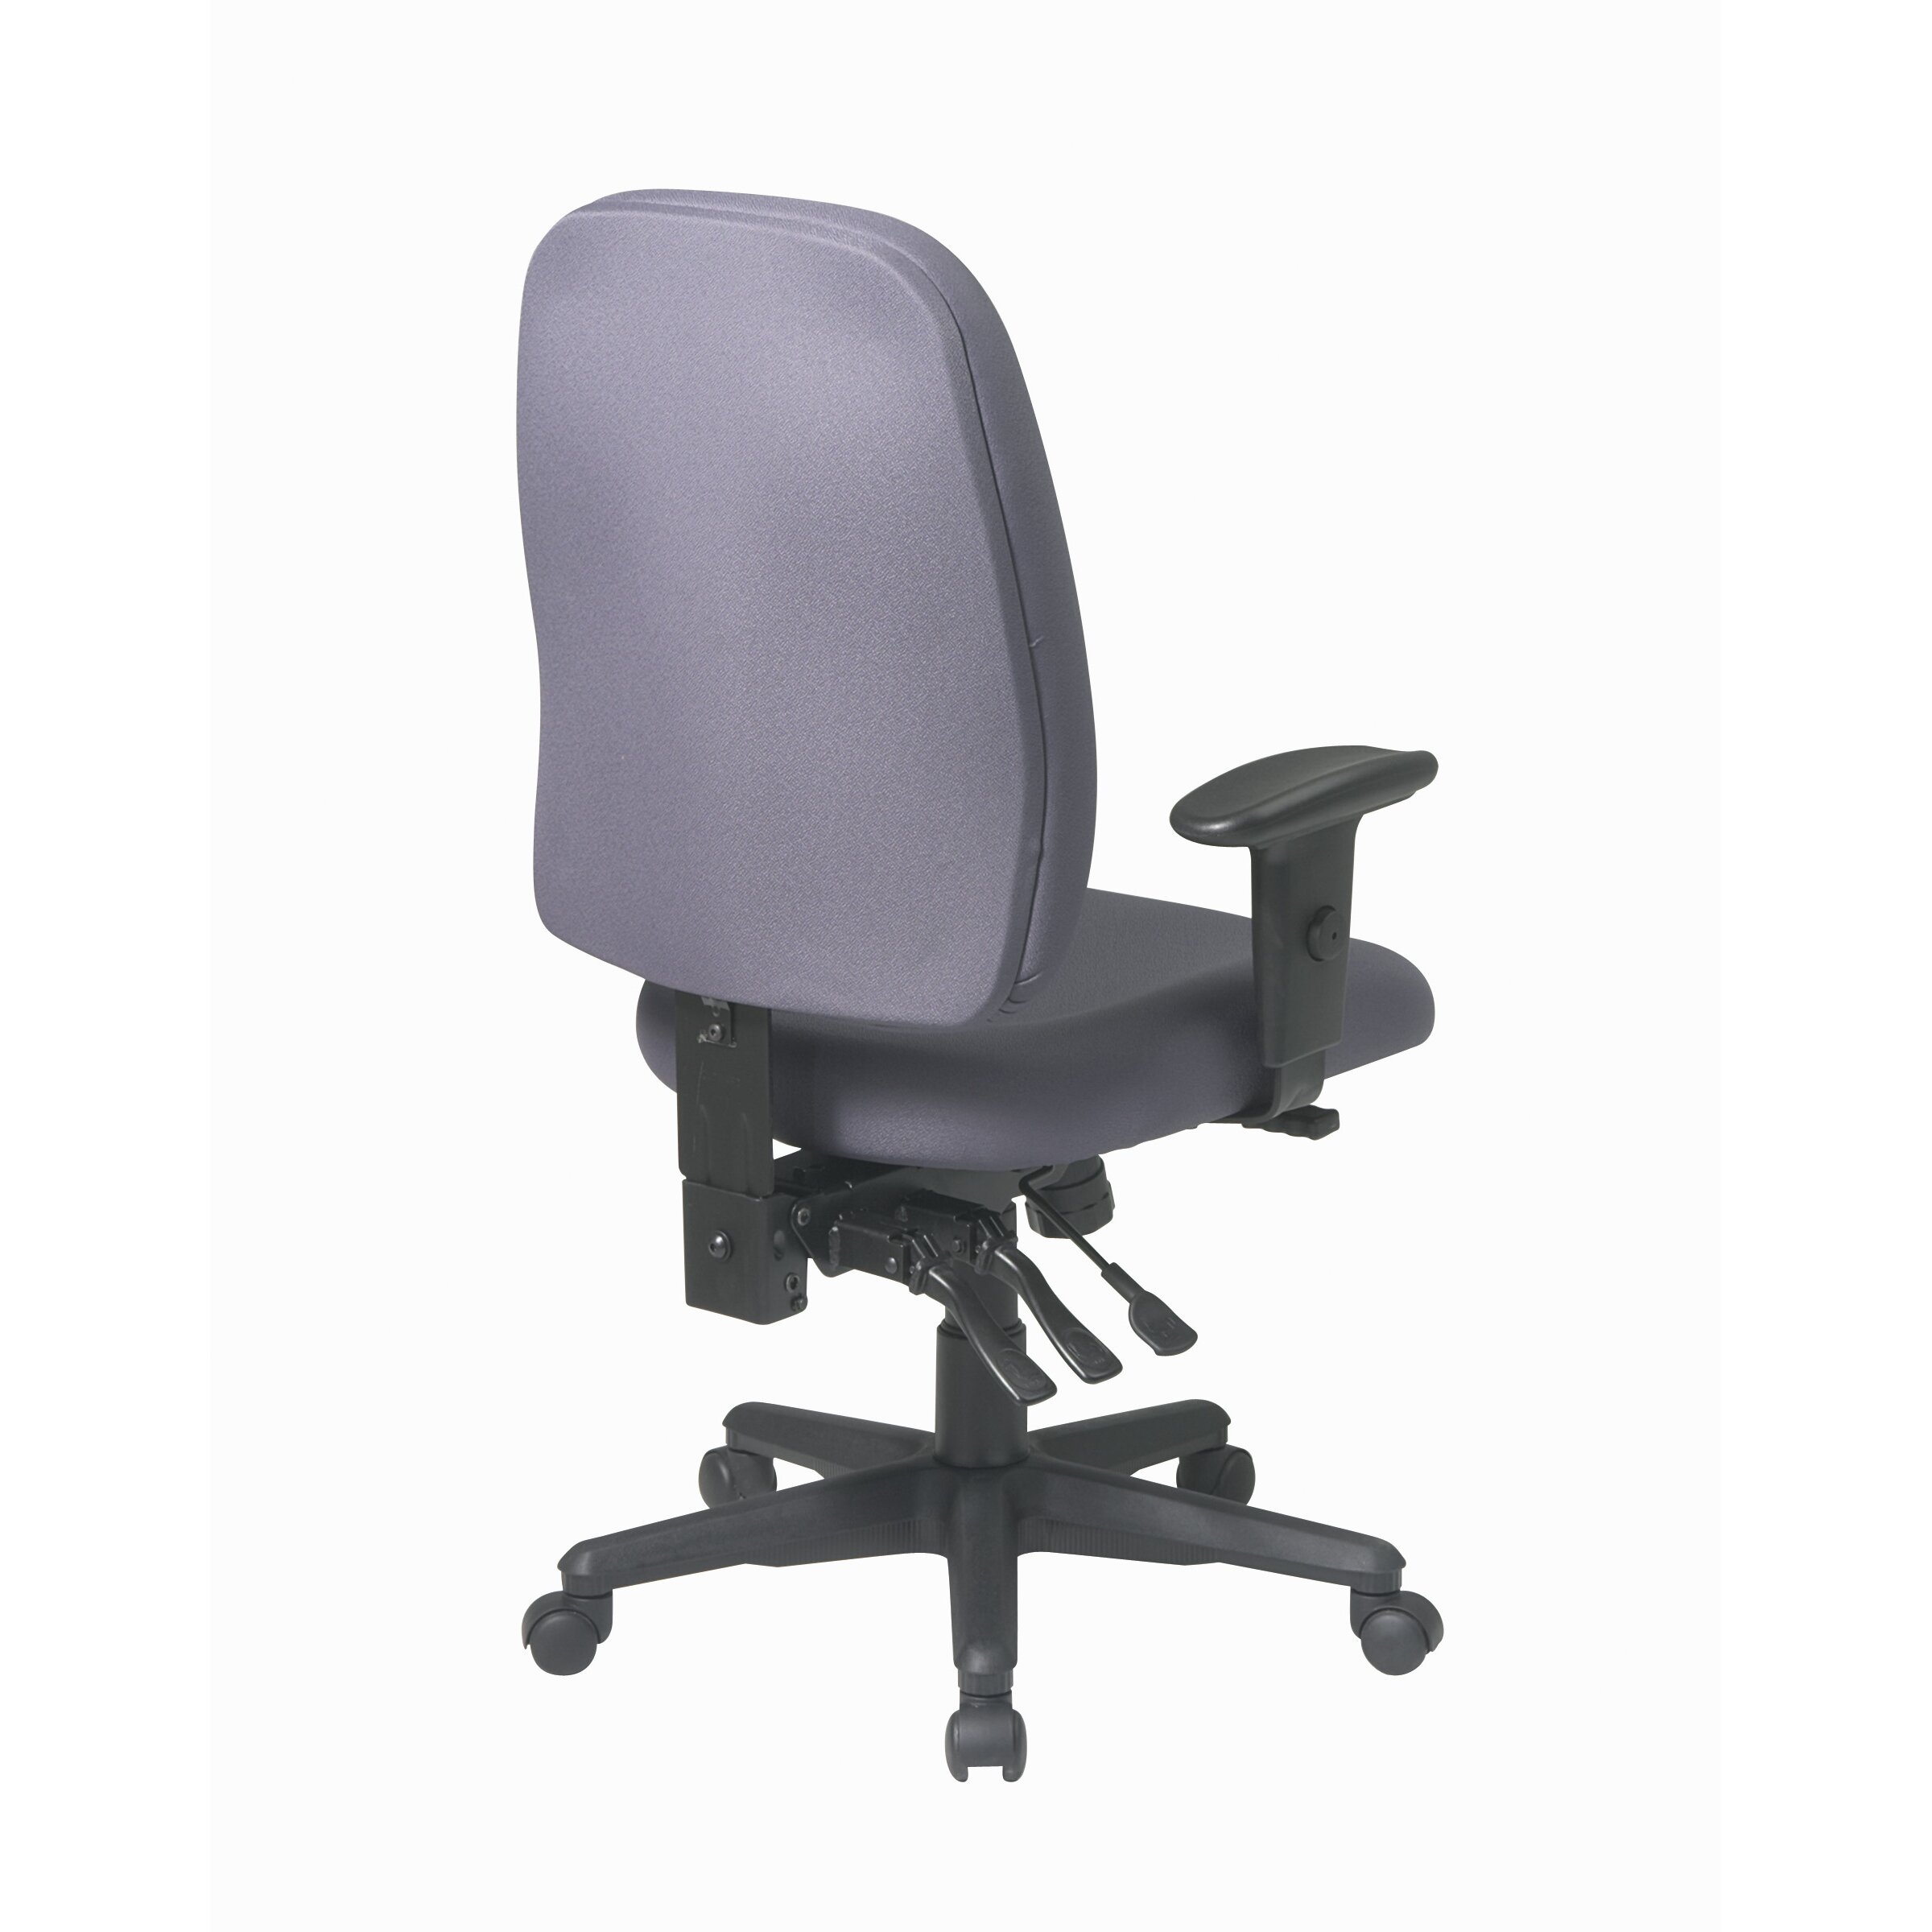 Office Star Ergonomic Mid Back Office Chair With Adjustable Soft Padded Arms